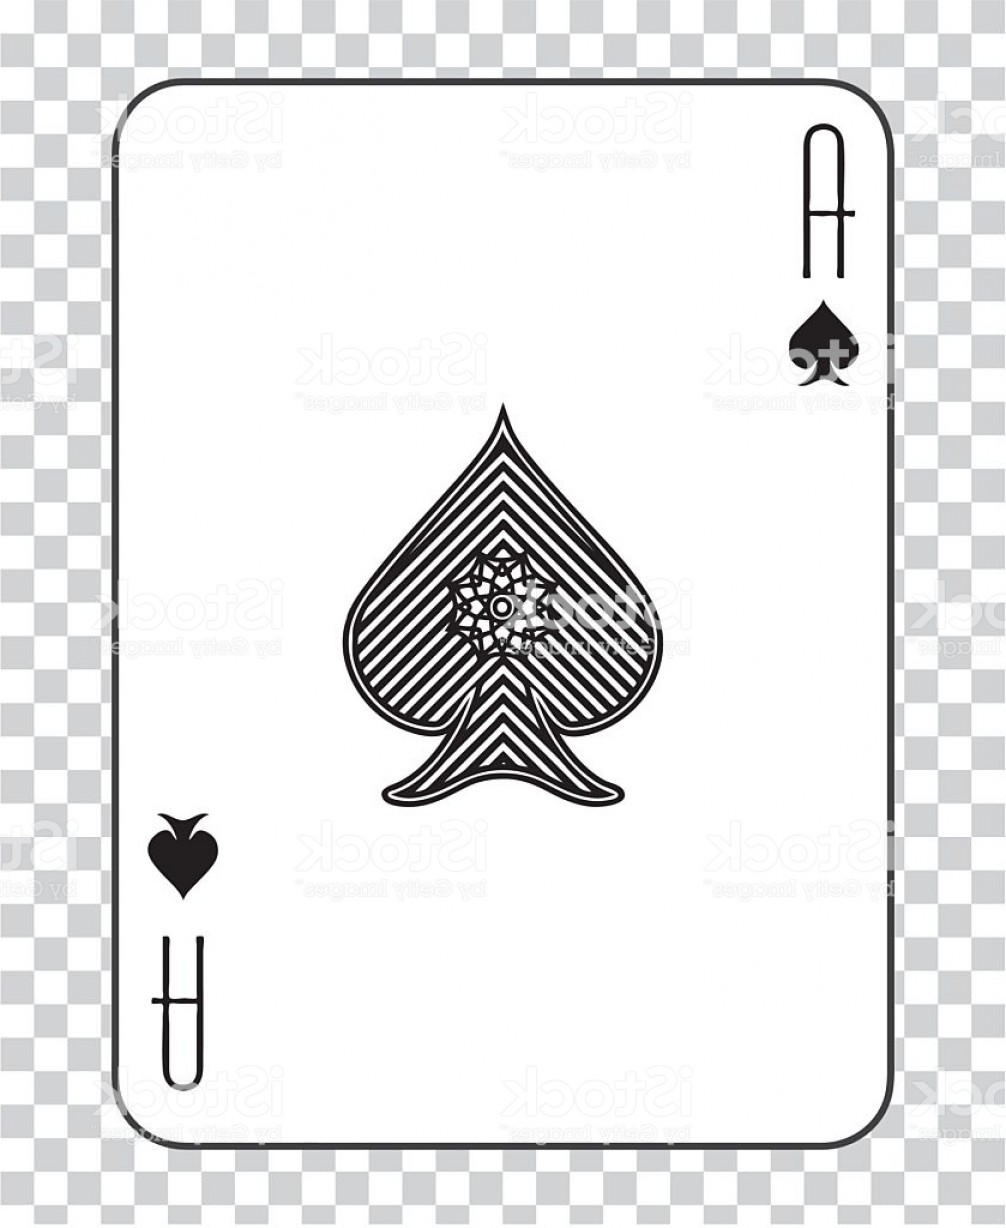 Spades Vector Art: Single Playing Cards Vector Ace Spades Gm